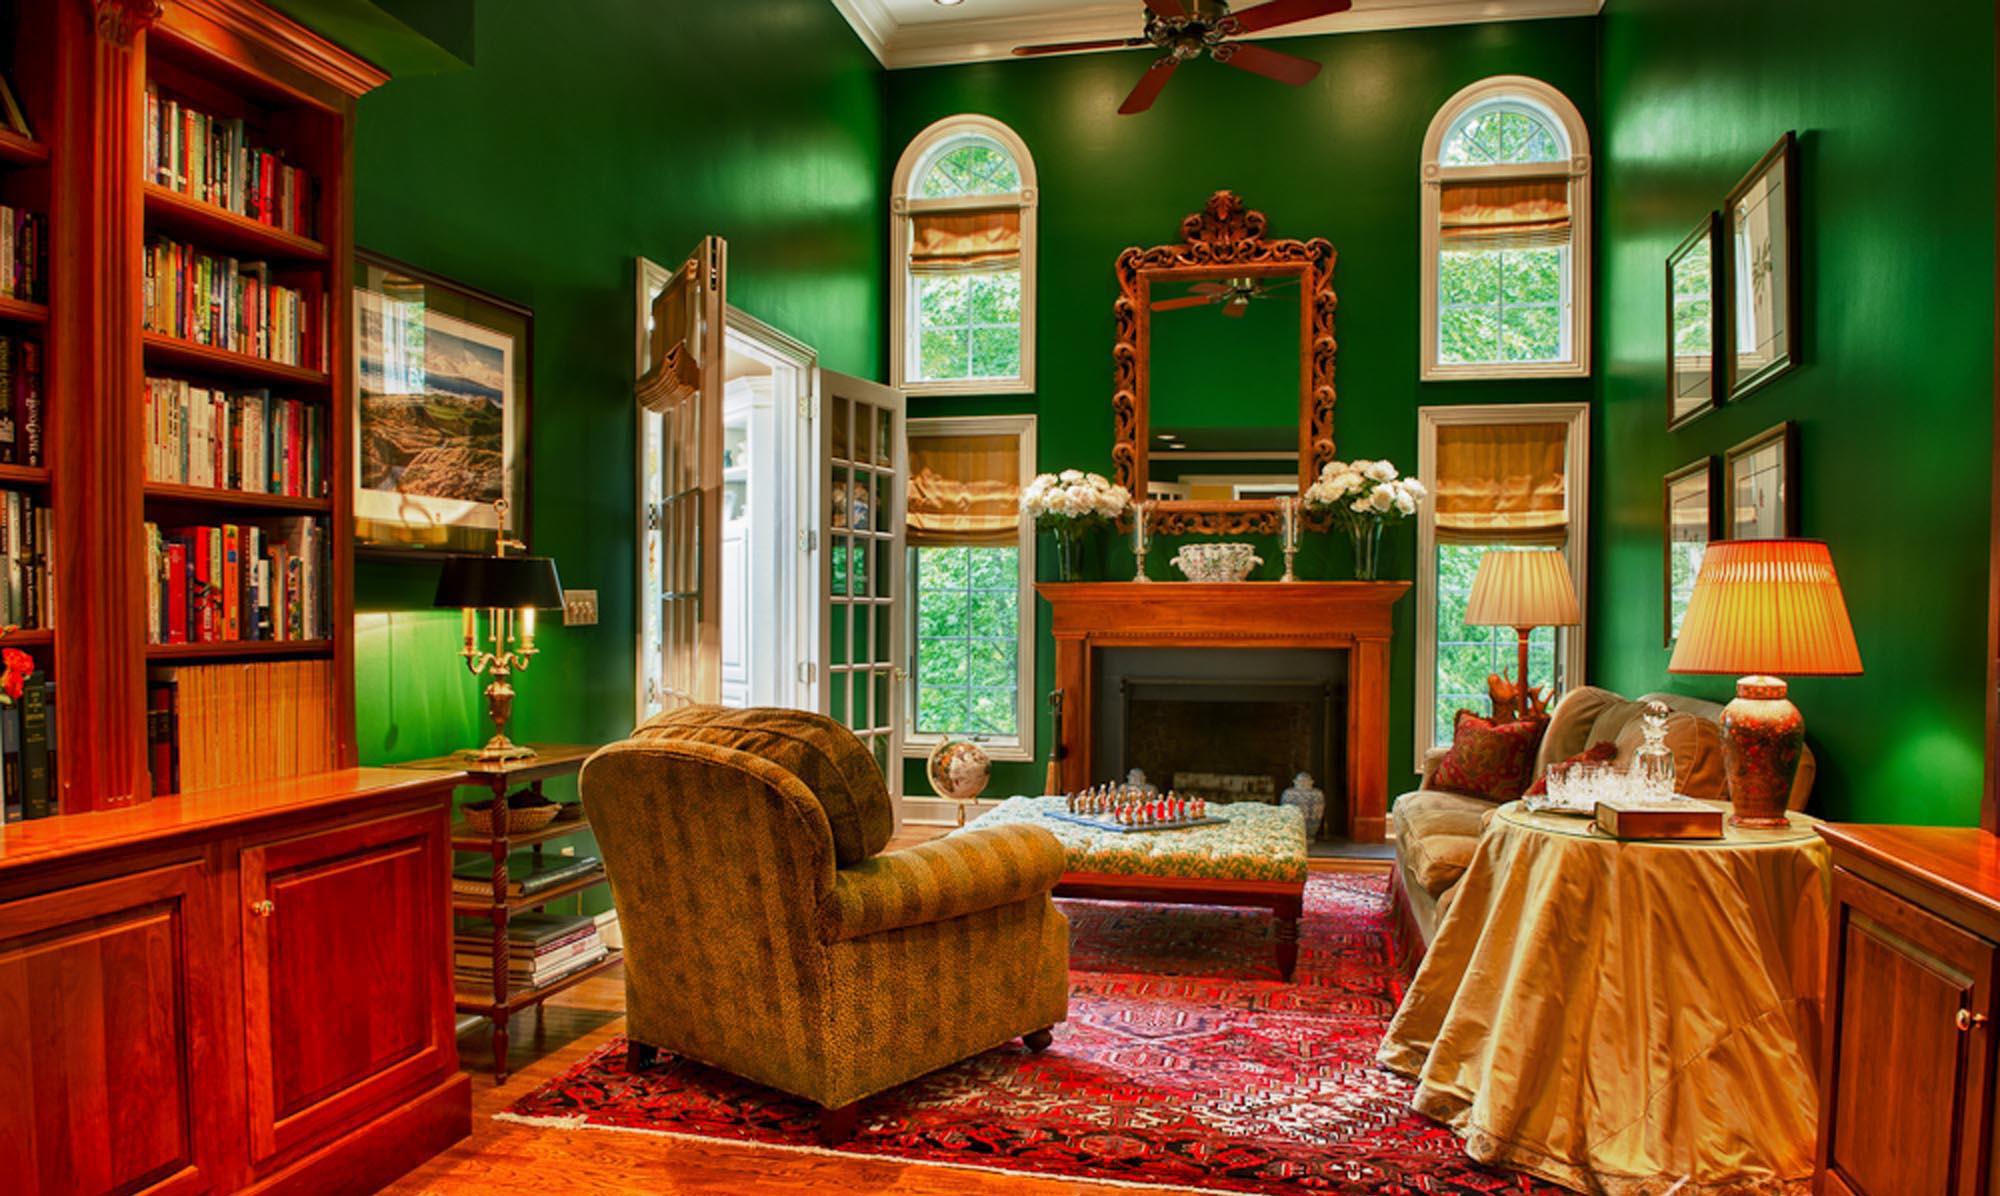 Warm living room in green paint with printed carpet and fireplace